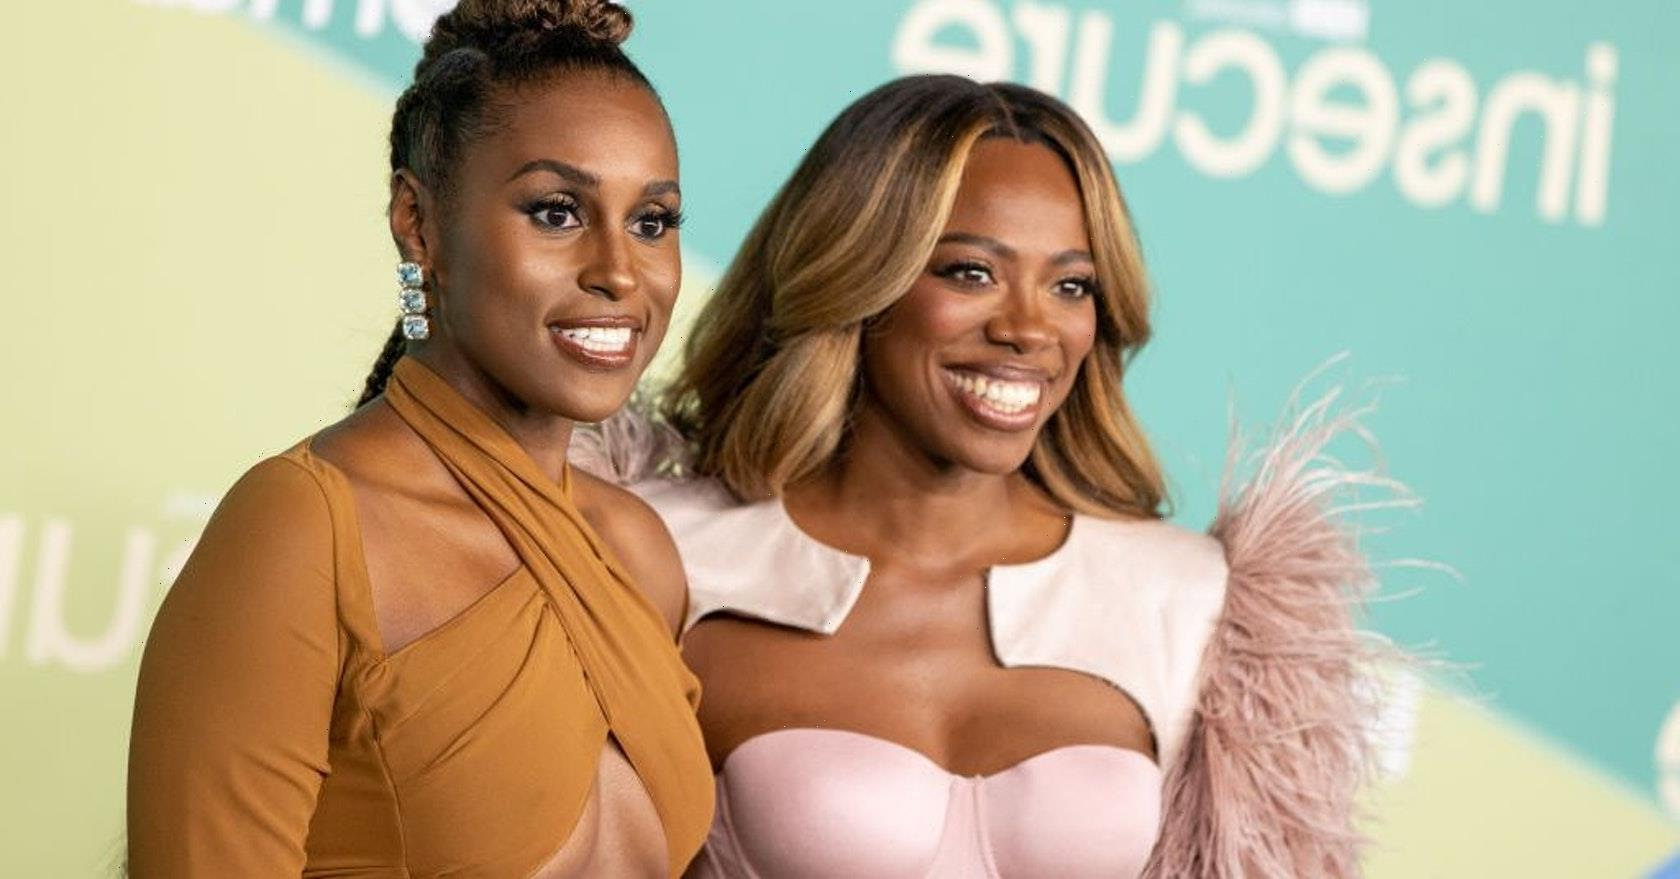 Insecure: 5 Black British women discuss the groundbreaking impact of Issa Rae's hit show